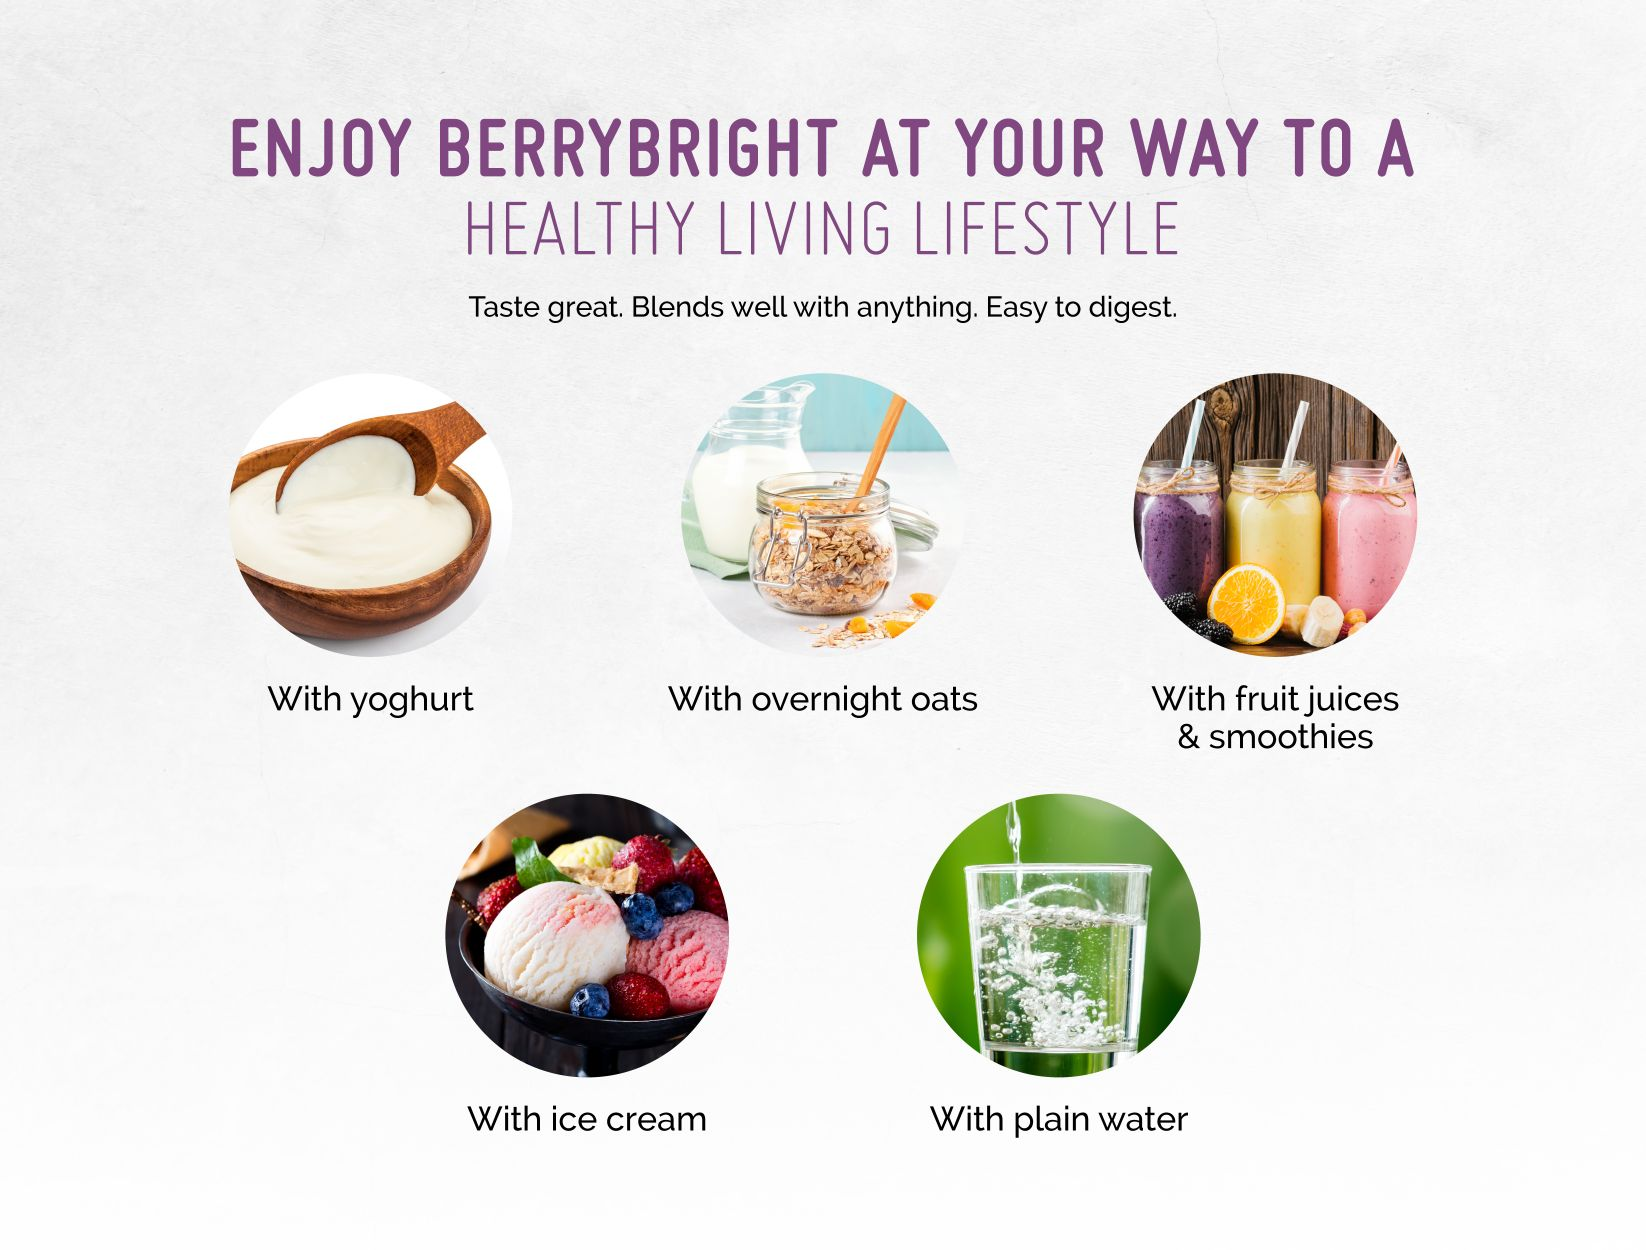 Berry Bright Many ways to enjoy